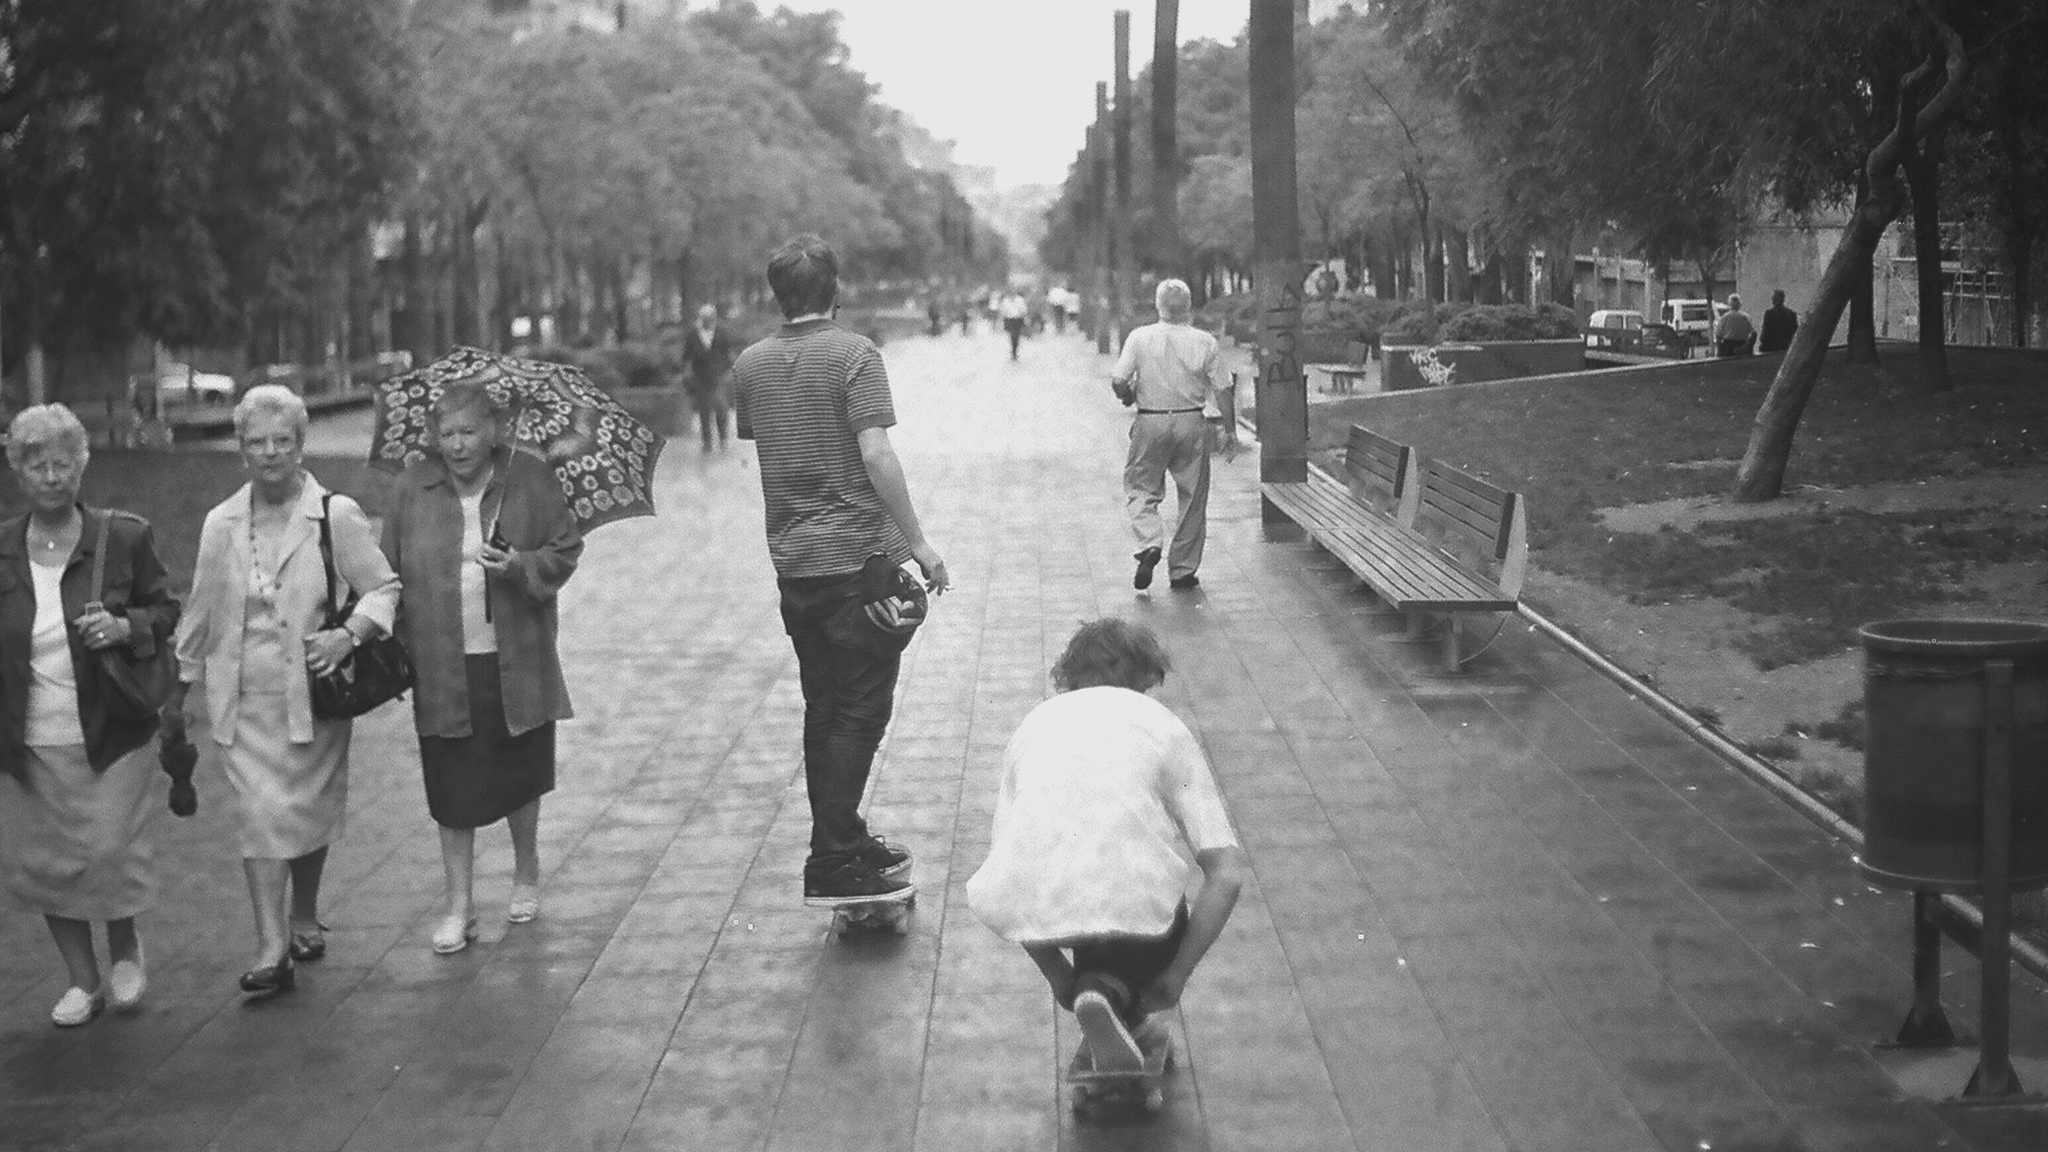 With so many sights to see on the streets of Barcelona, getting around by skateboard is the optimal mode of transit.